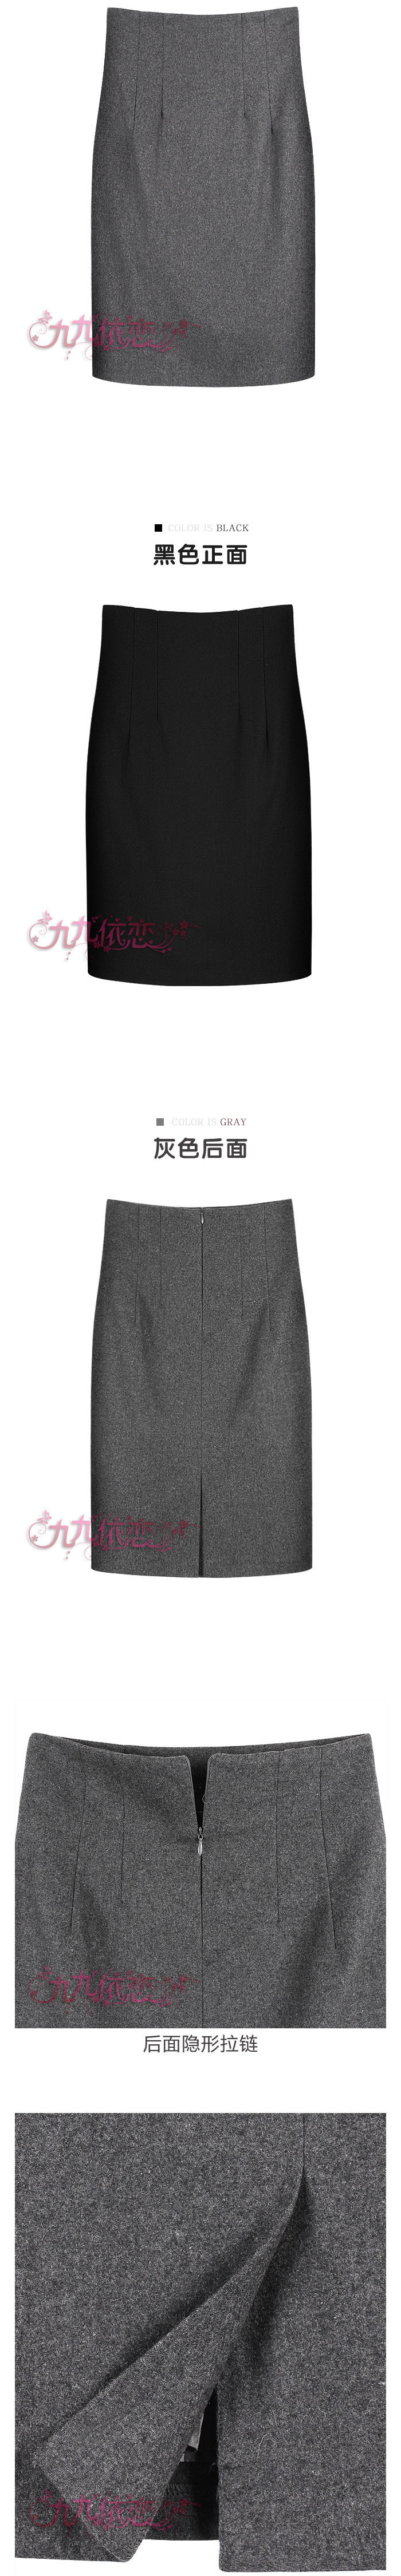 HTB1RjkYGVXXXXX8XFXXq6xXFXXXN - FREE SHIPPING Pencil skirts for women winter formal high waisted JKP146